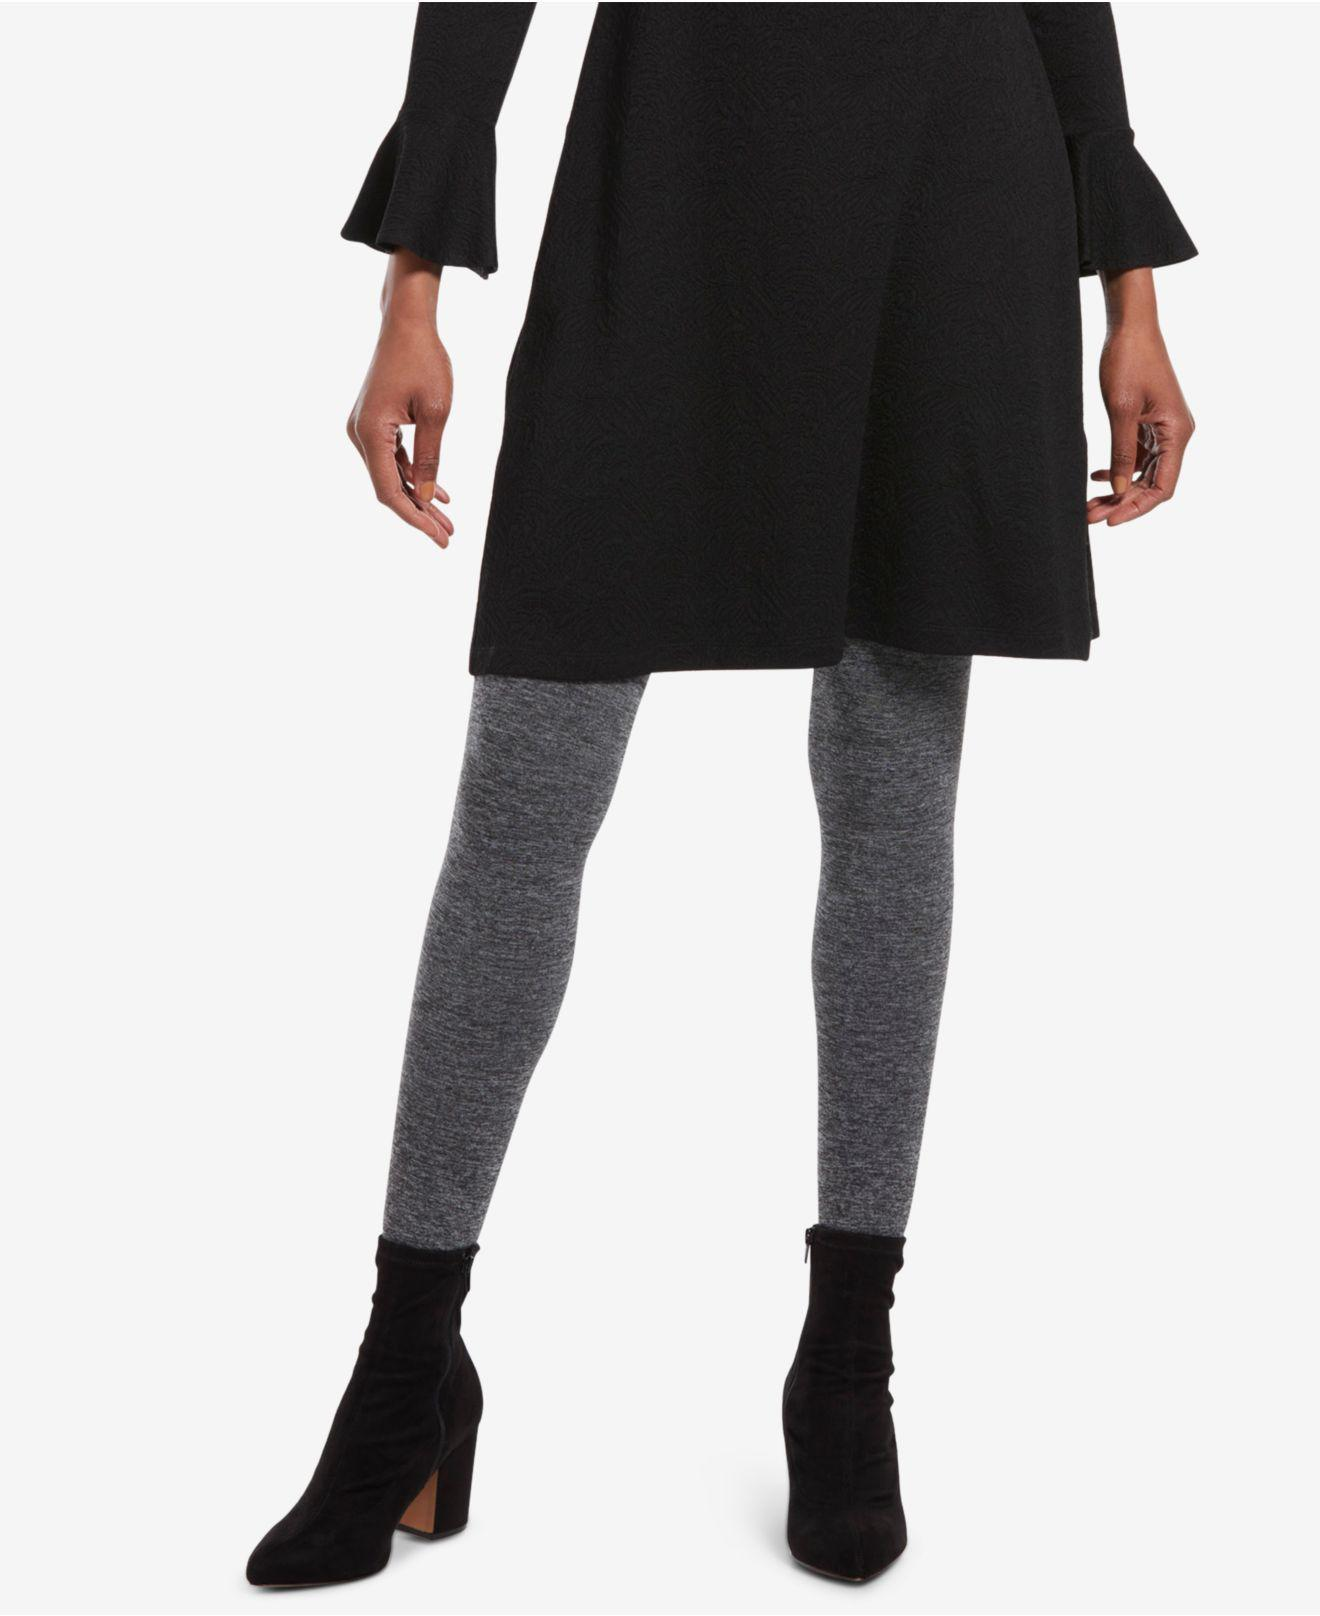 9cc434c20 Lyst - Hue ® Brushed Sweater Tights in Gray